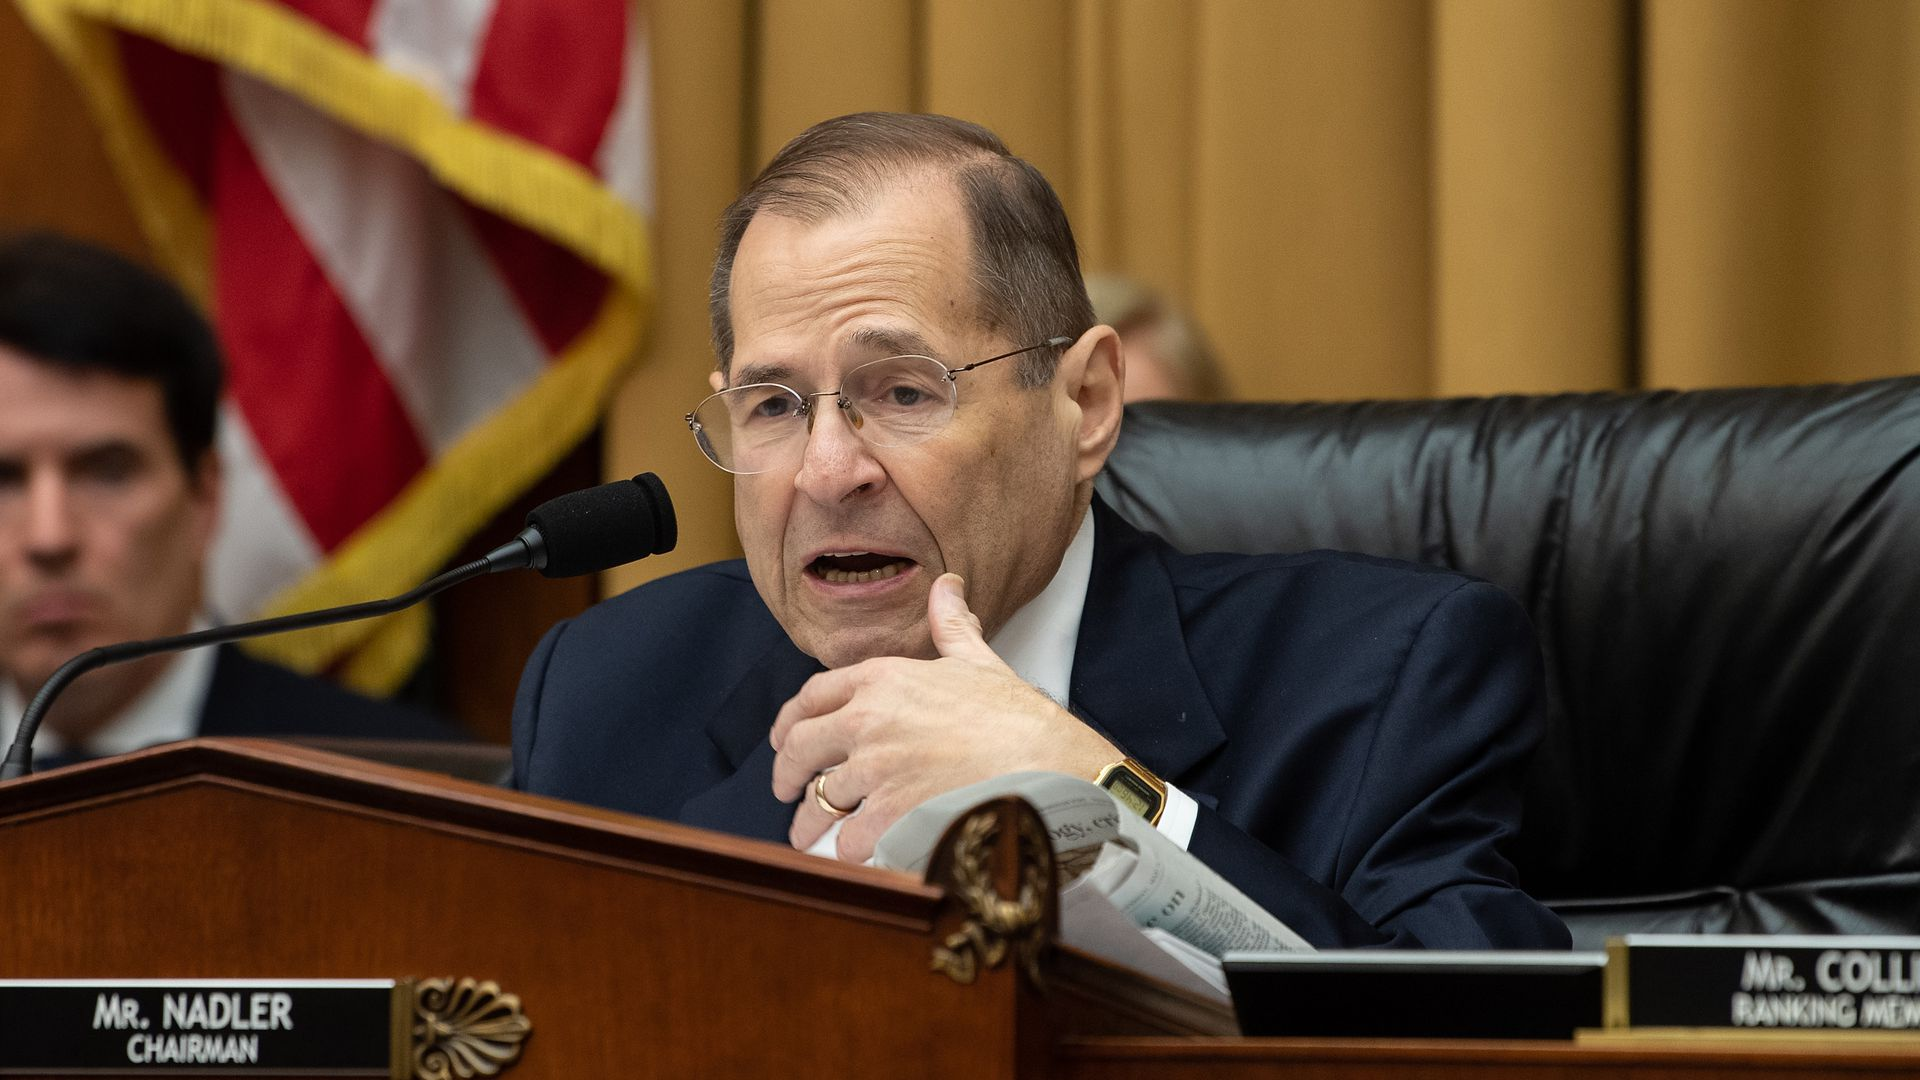 Jerry Nadler speaks during a markup of a resolution supporting the committee report on Attorney General William Barr's failure to produce the unredacted Mueller report.